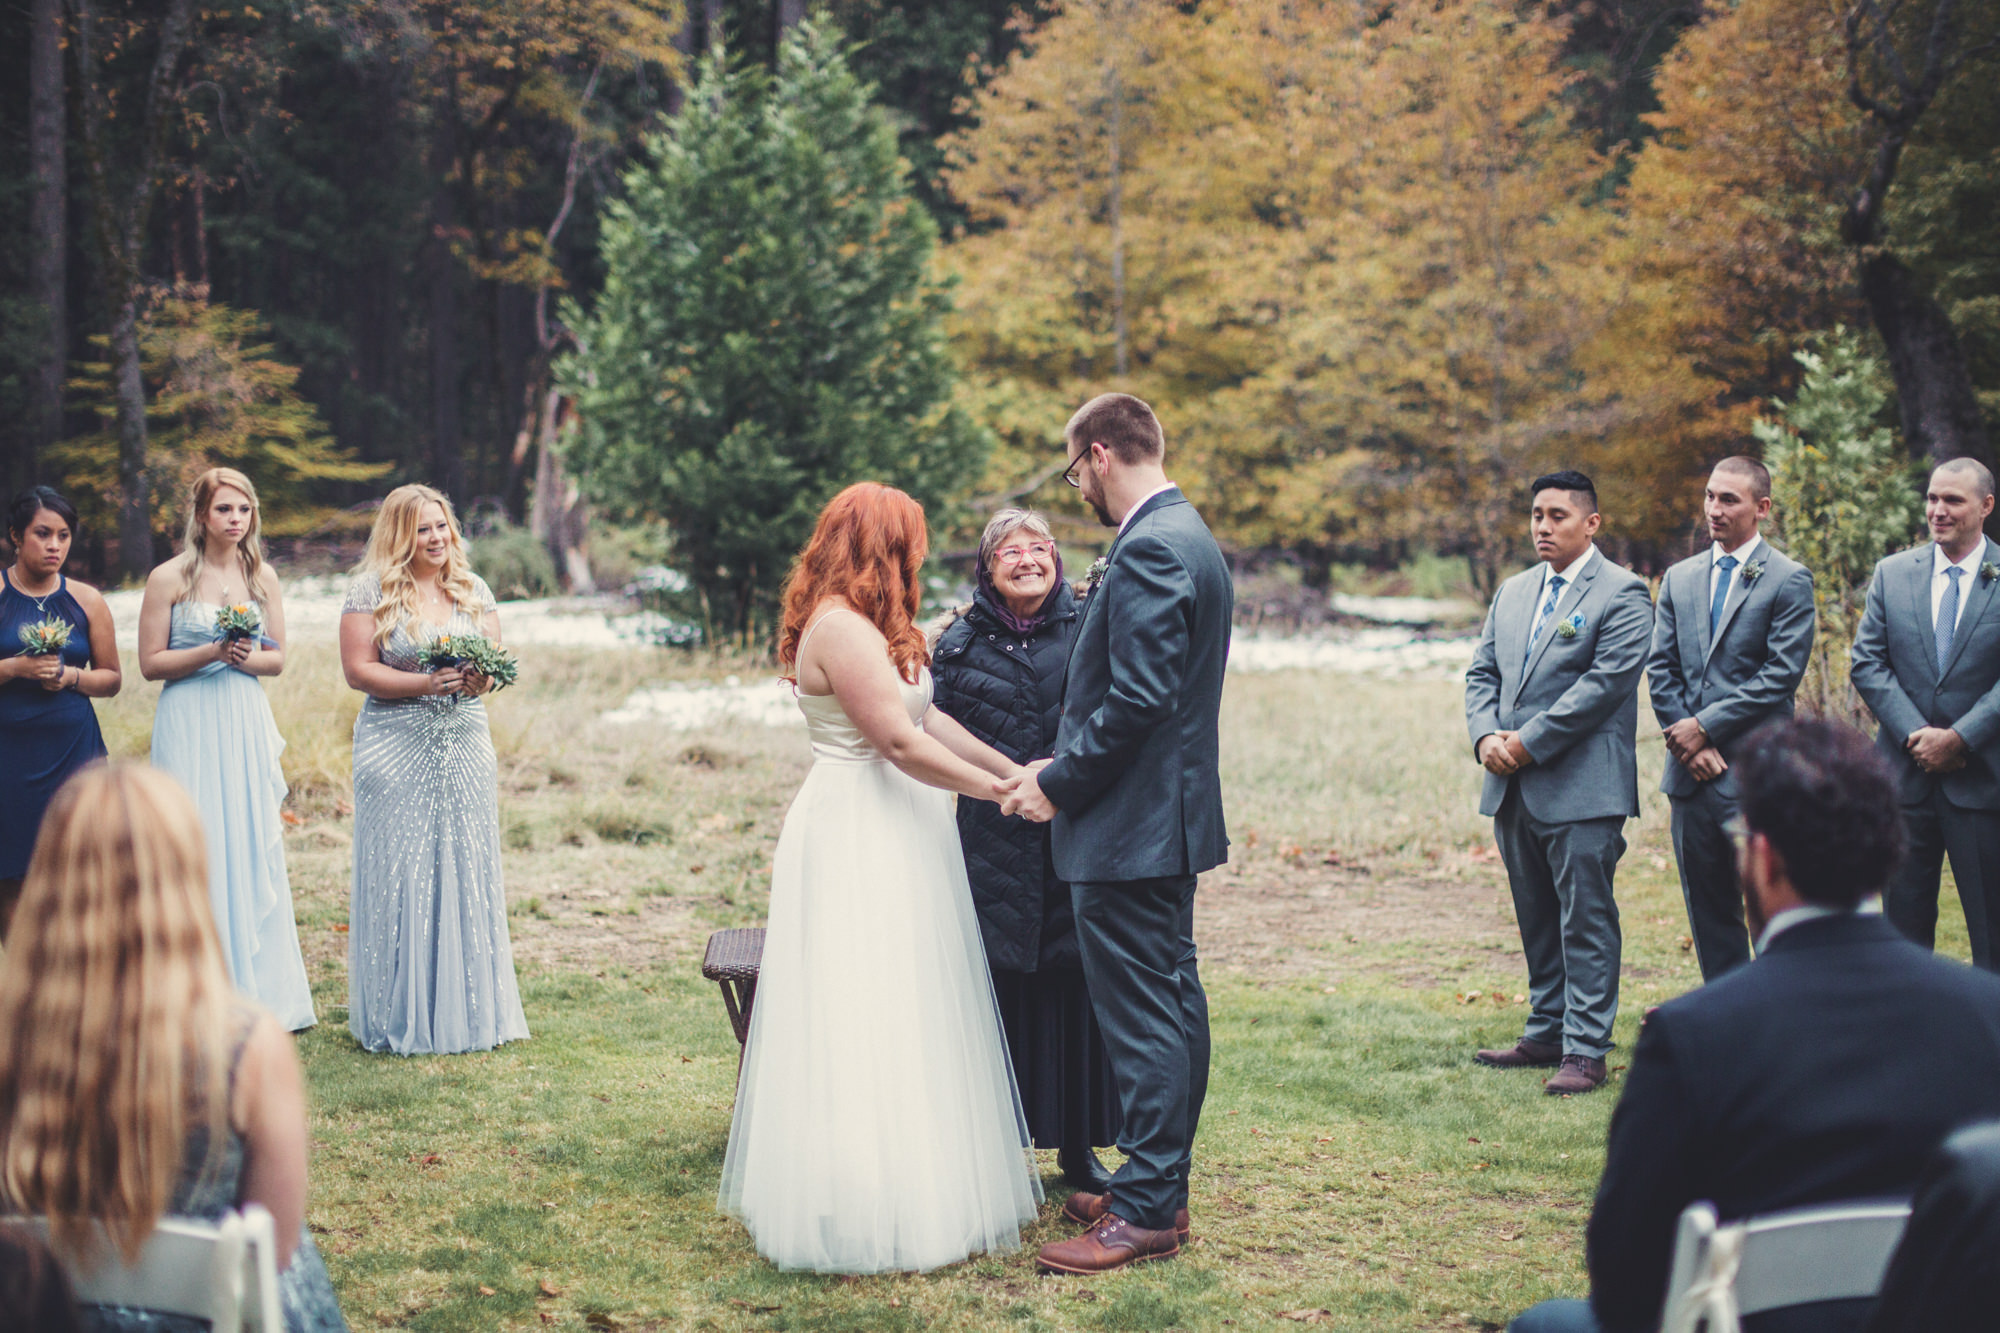 Yosemite wedding ©Anne-Claire Brun 130